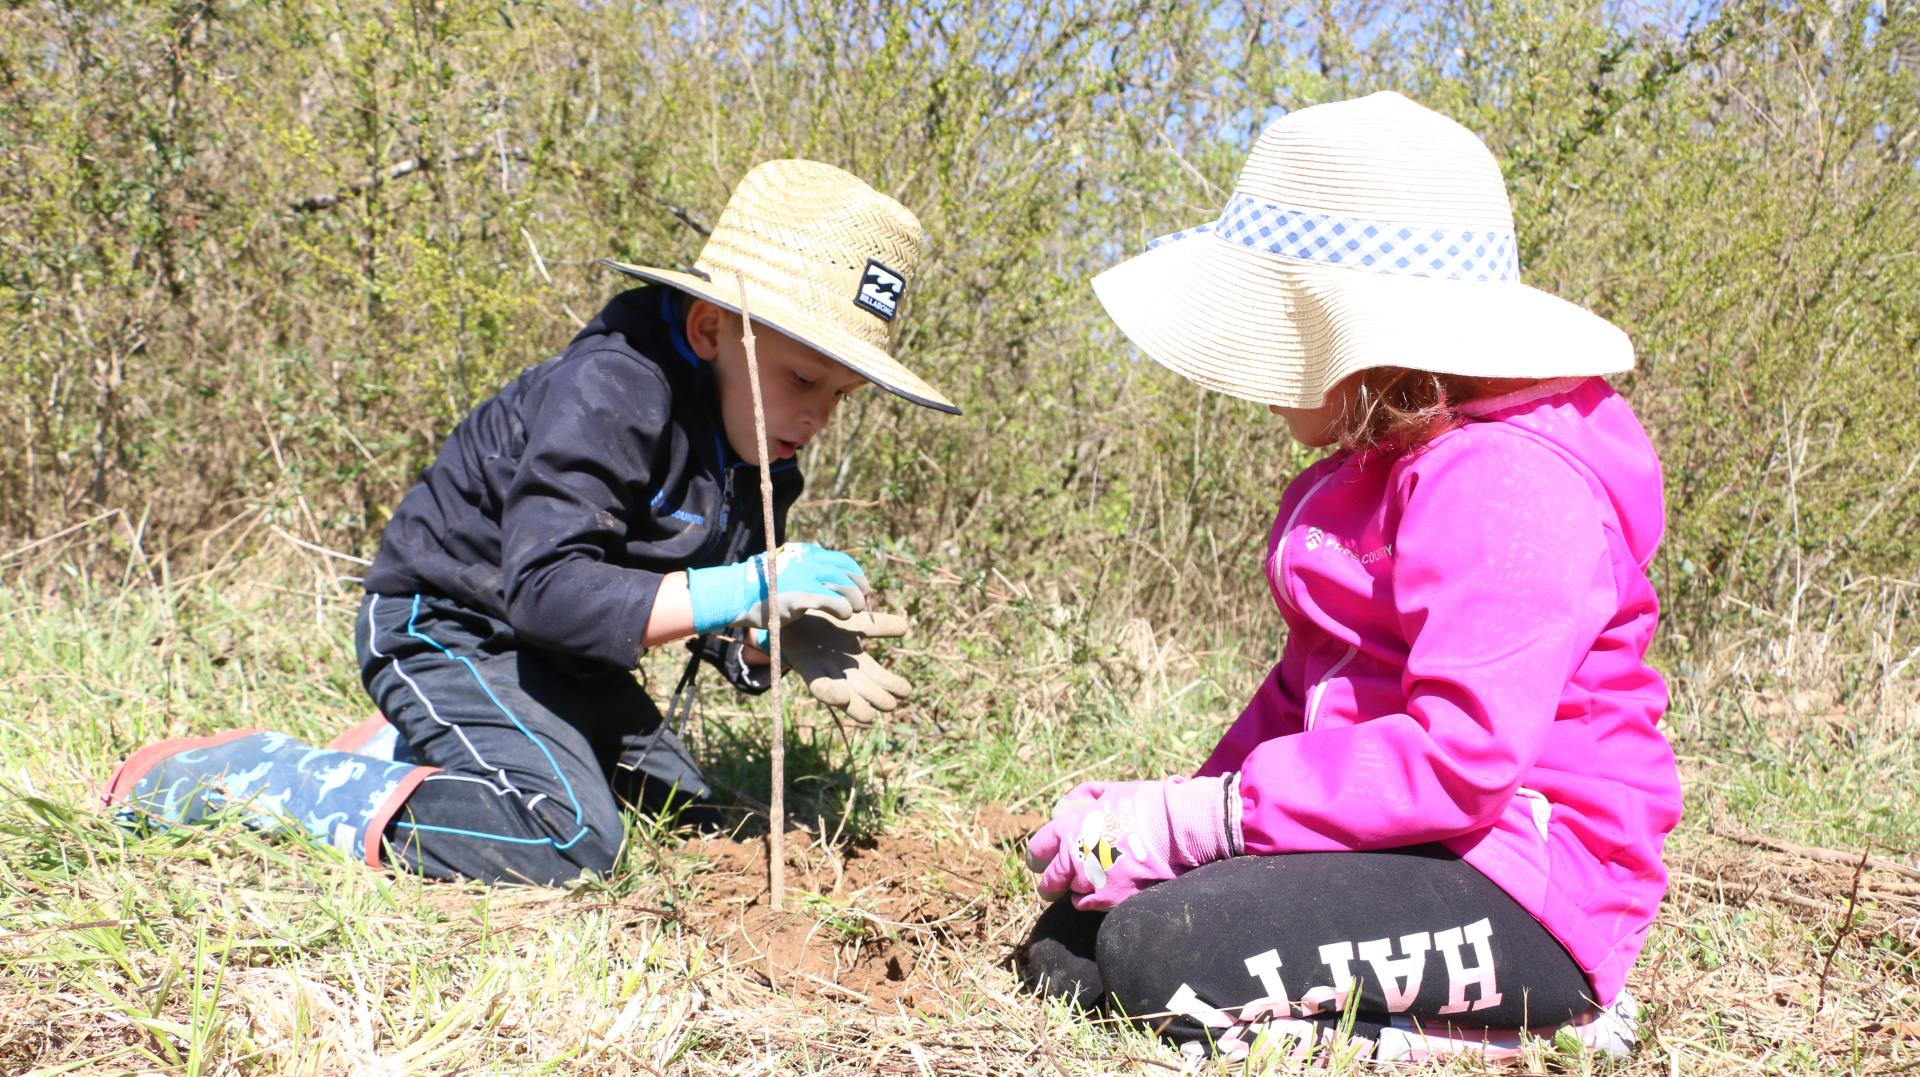 Kids planting a tree seedling for tree day